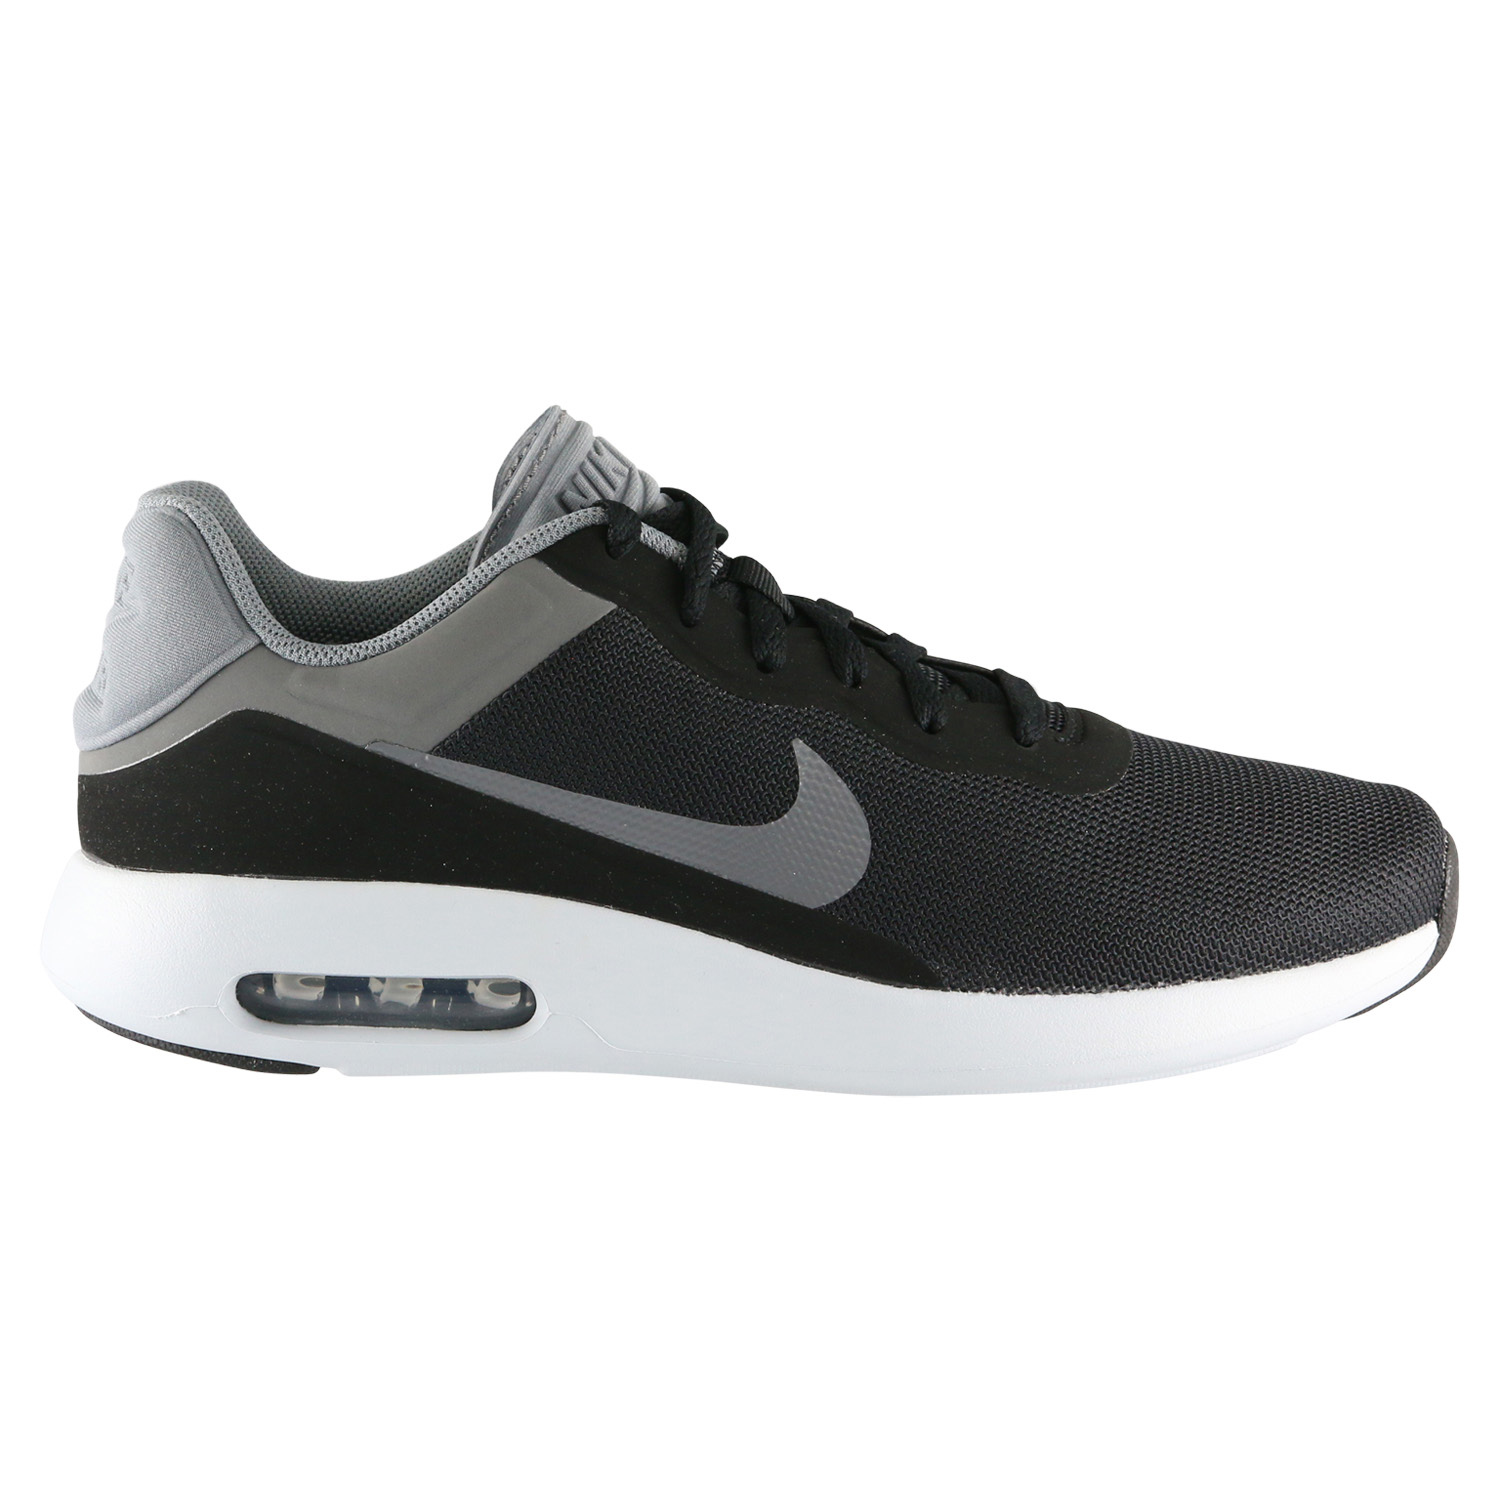 nike air max modern essential schuhe turnschuhe sneaker herren. Black Bedroom Furniture Sets. Home Design Ideas